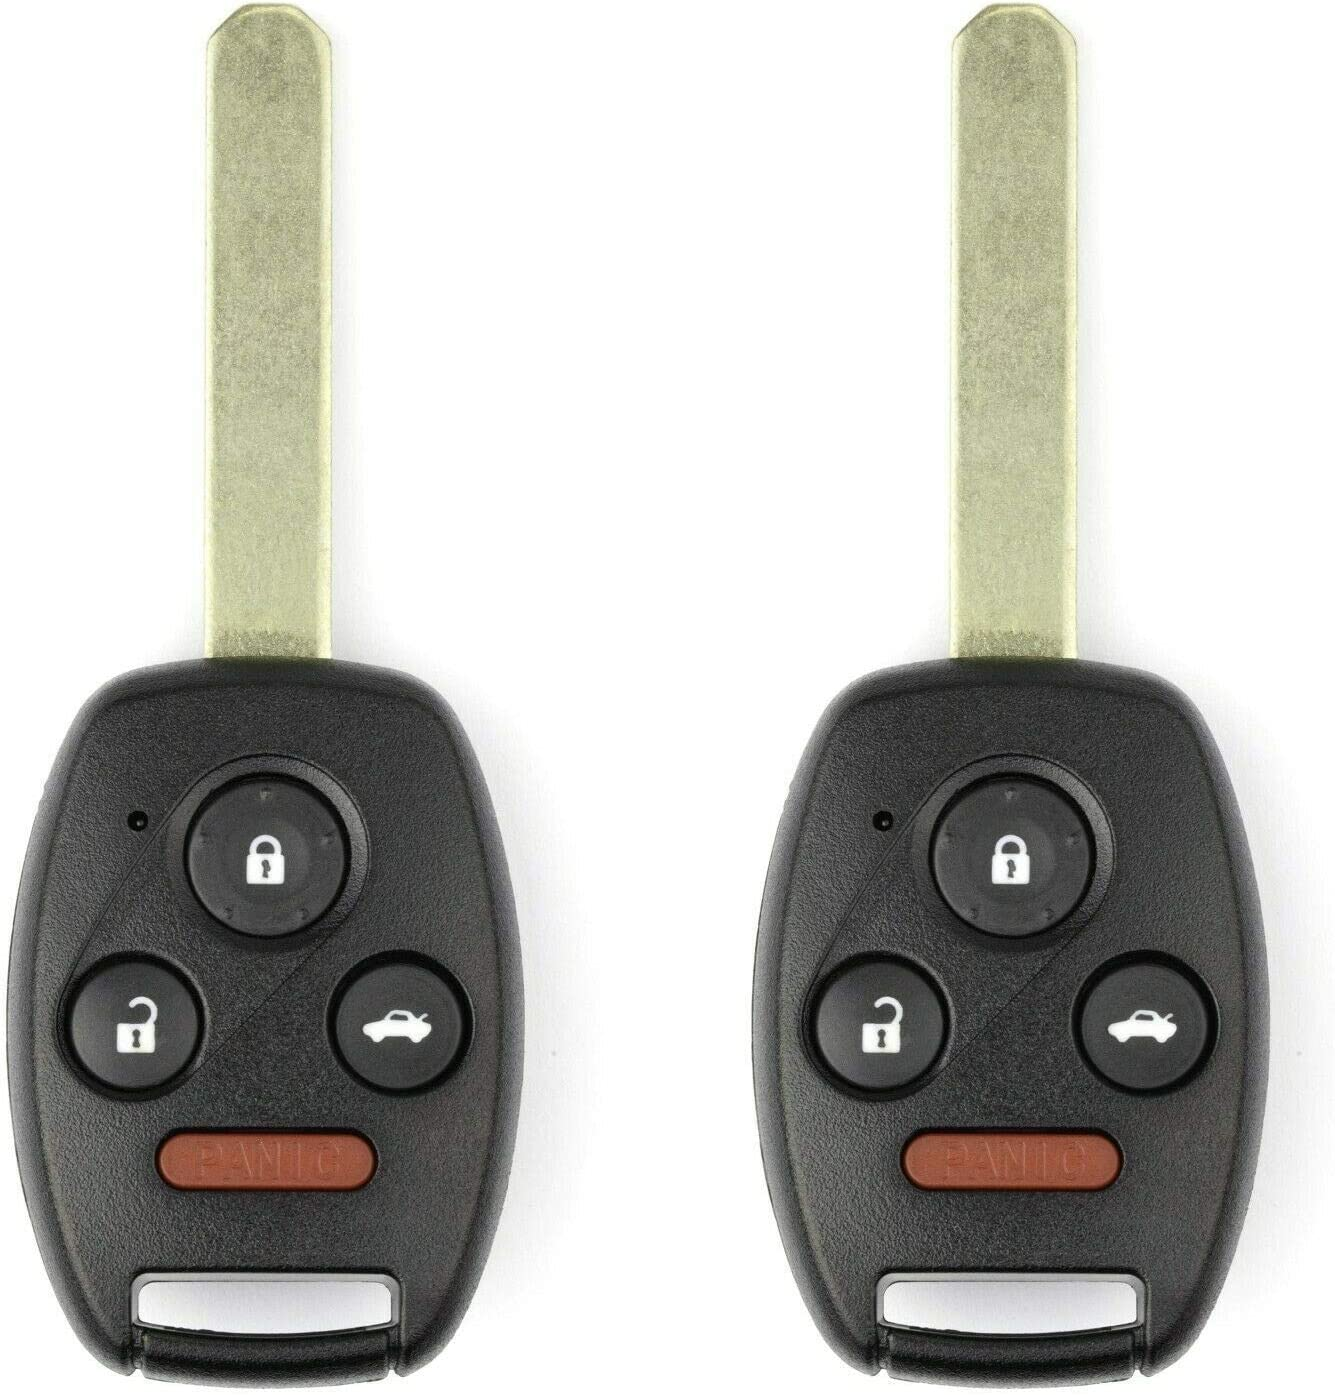 FikeyPro Keyless Entry Remote Control Car Key Fob fits 2003 2004 2005 2006 2007 Honda Accord OUCG8D-380H-A 2 Pack